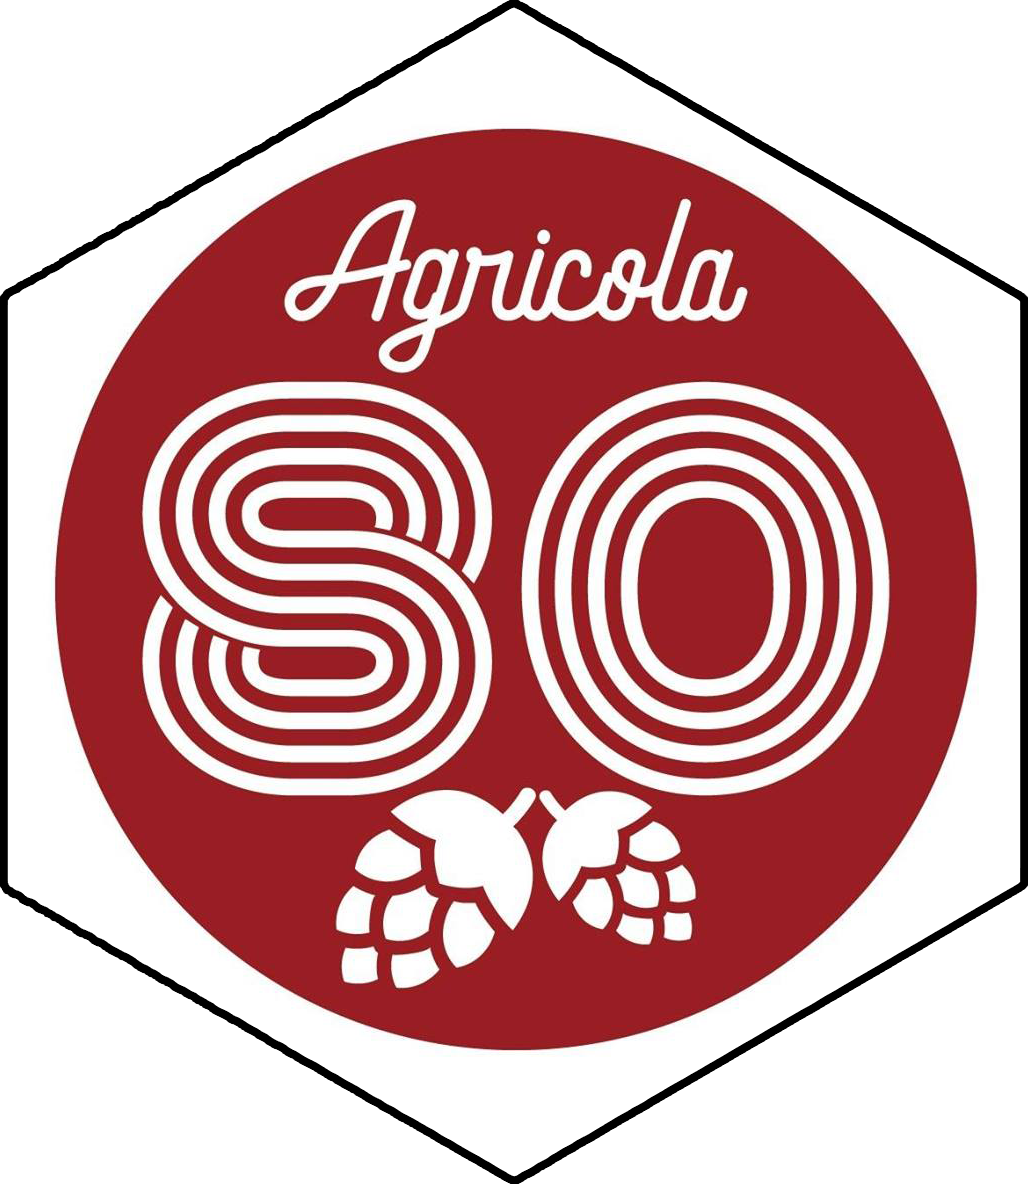 AGRICOLA 80